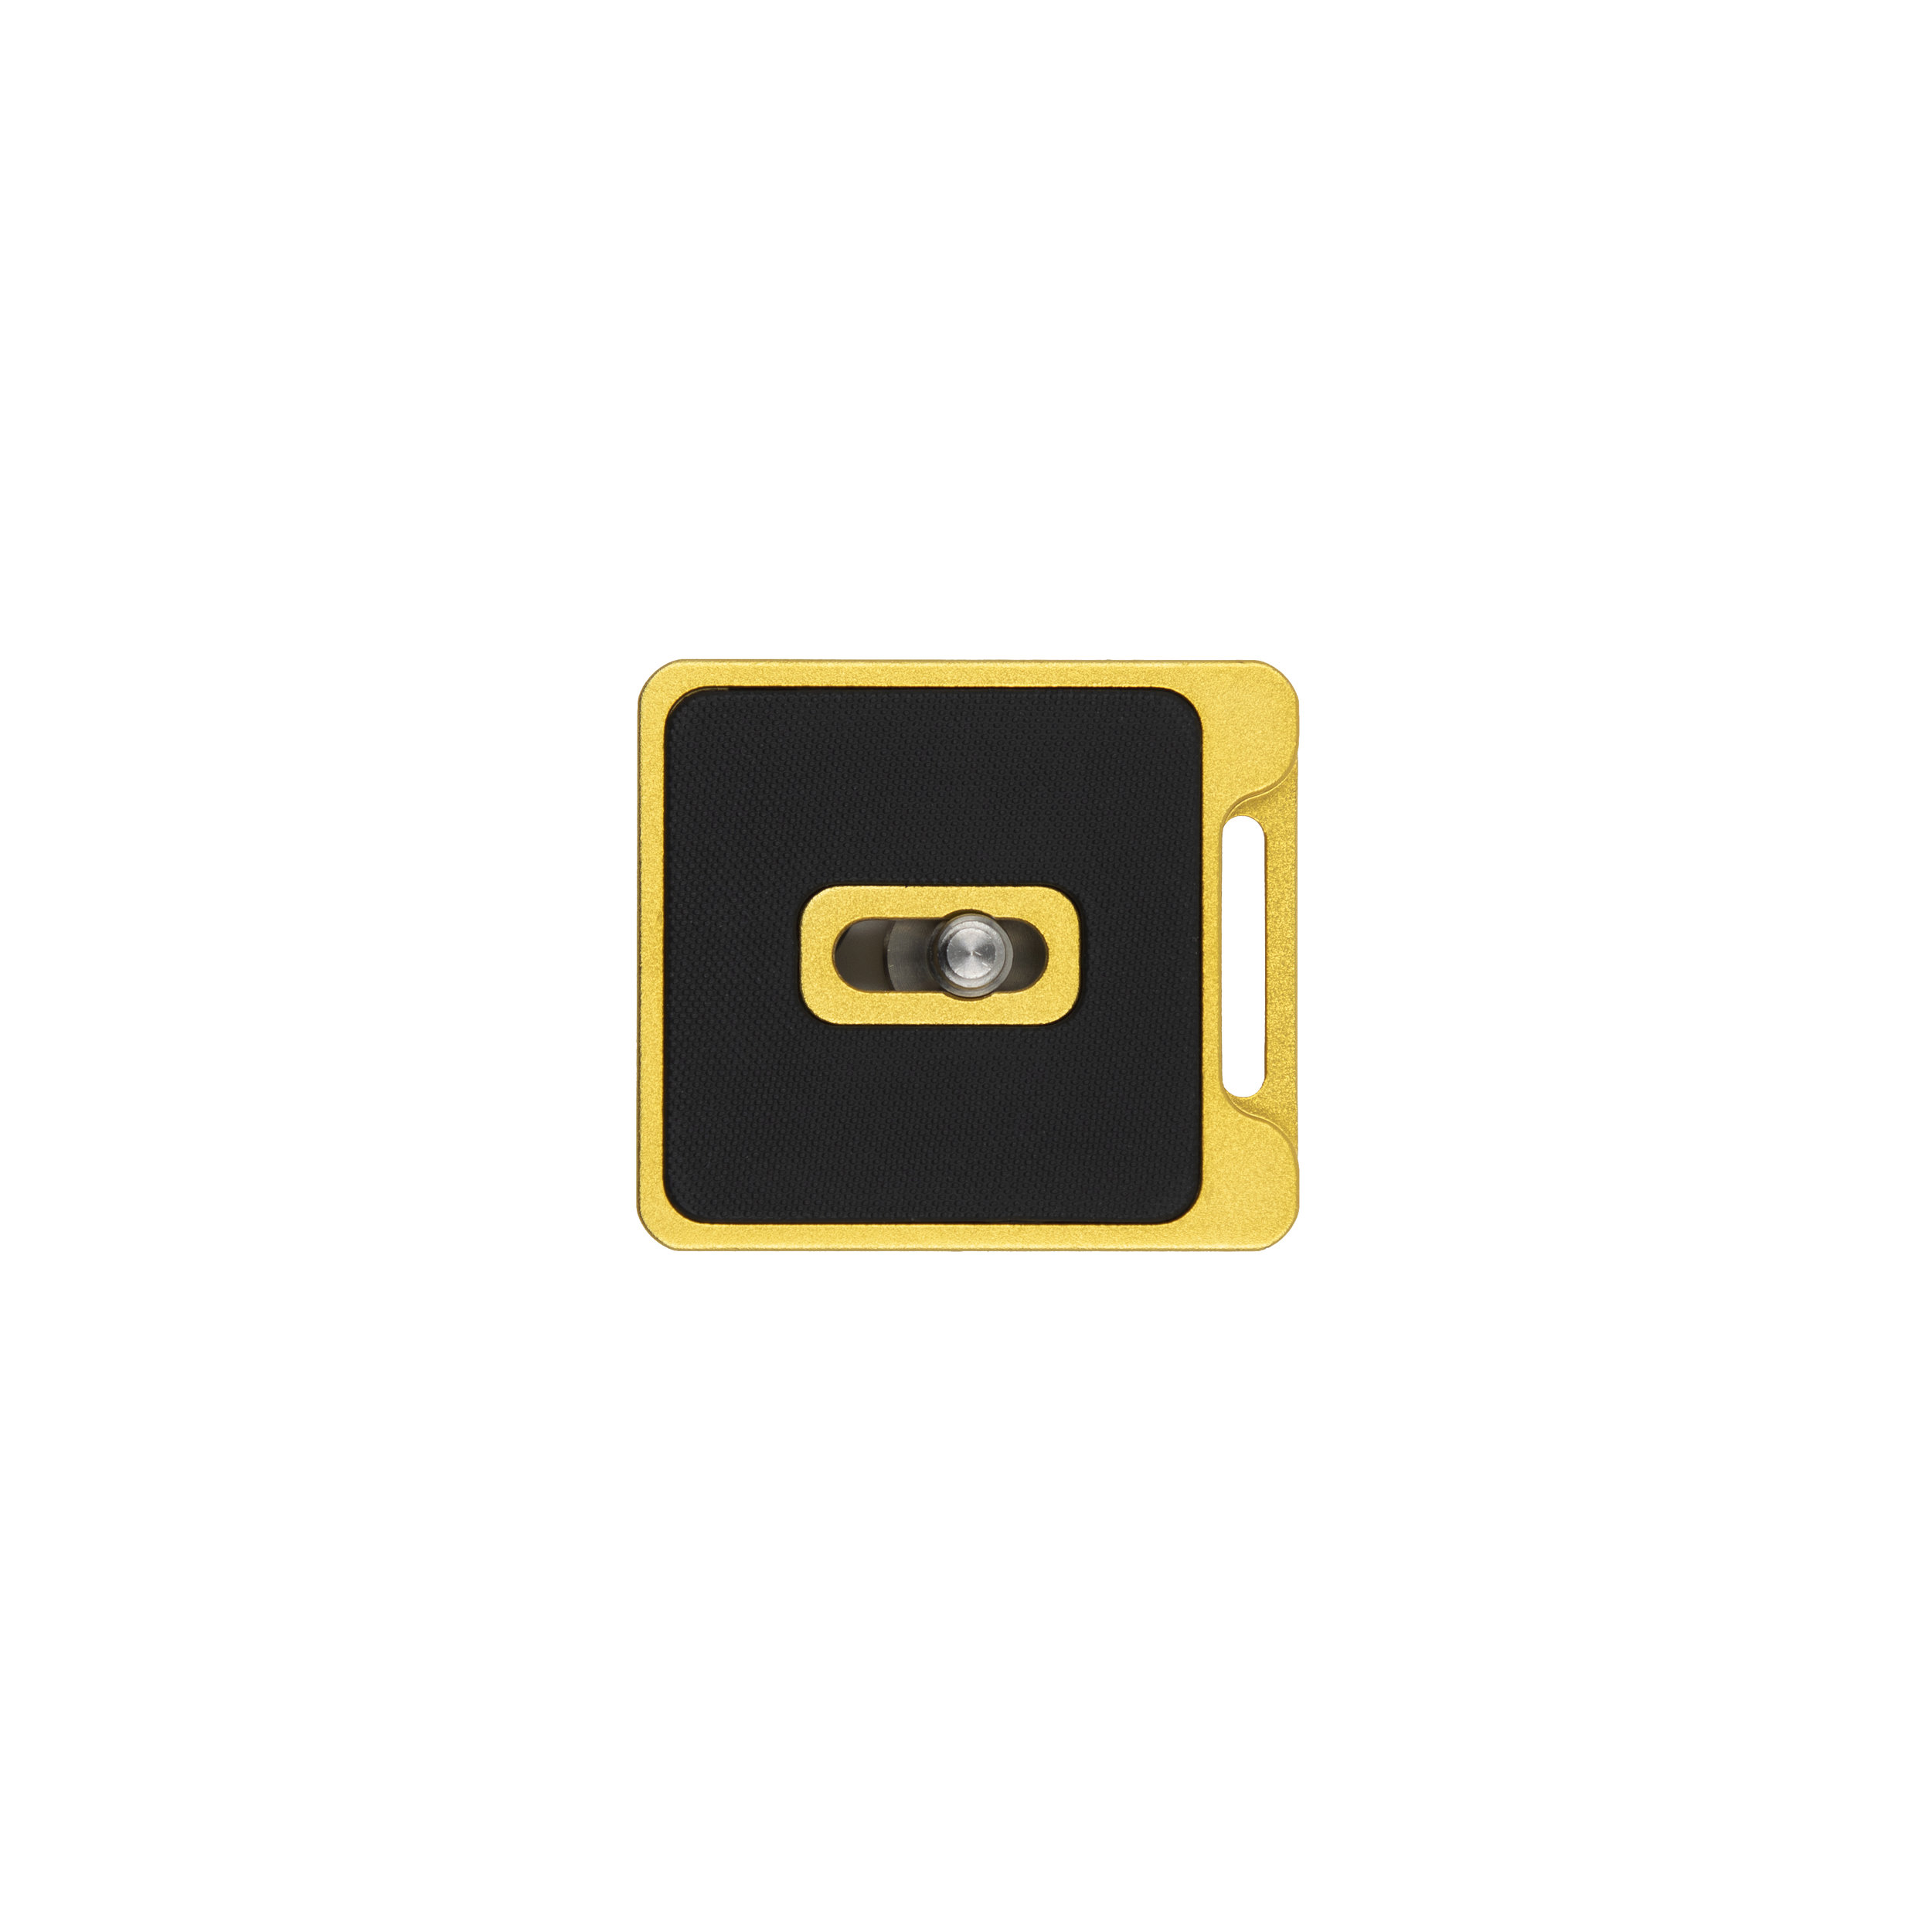 XC-MH QUICK RELEASE PLATE -YELLOW   $19.95